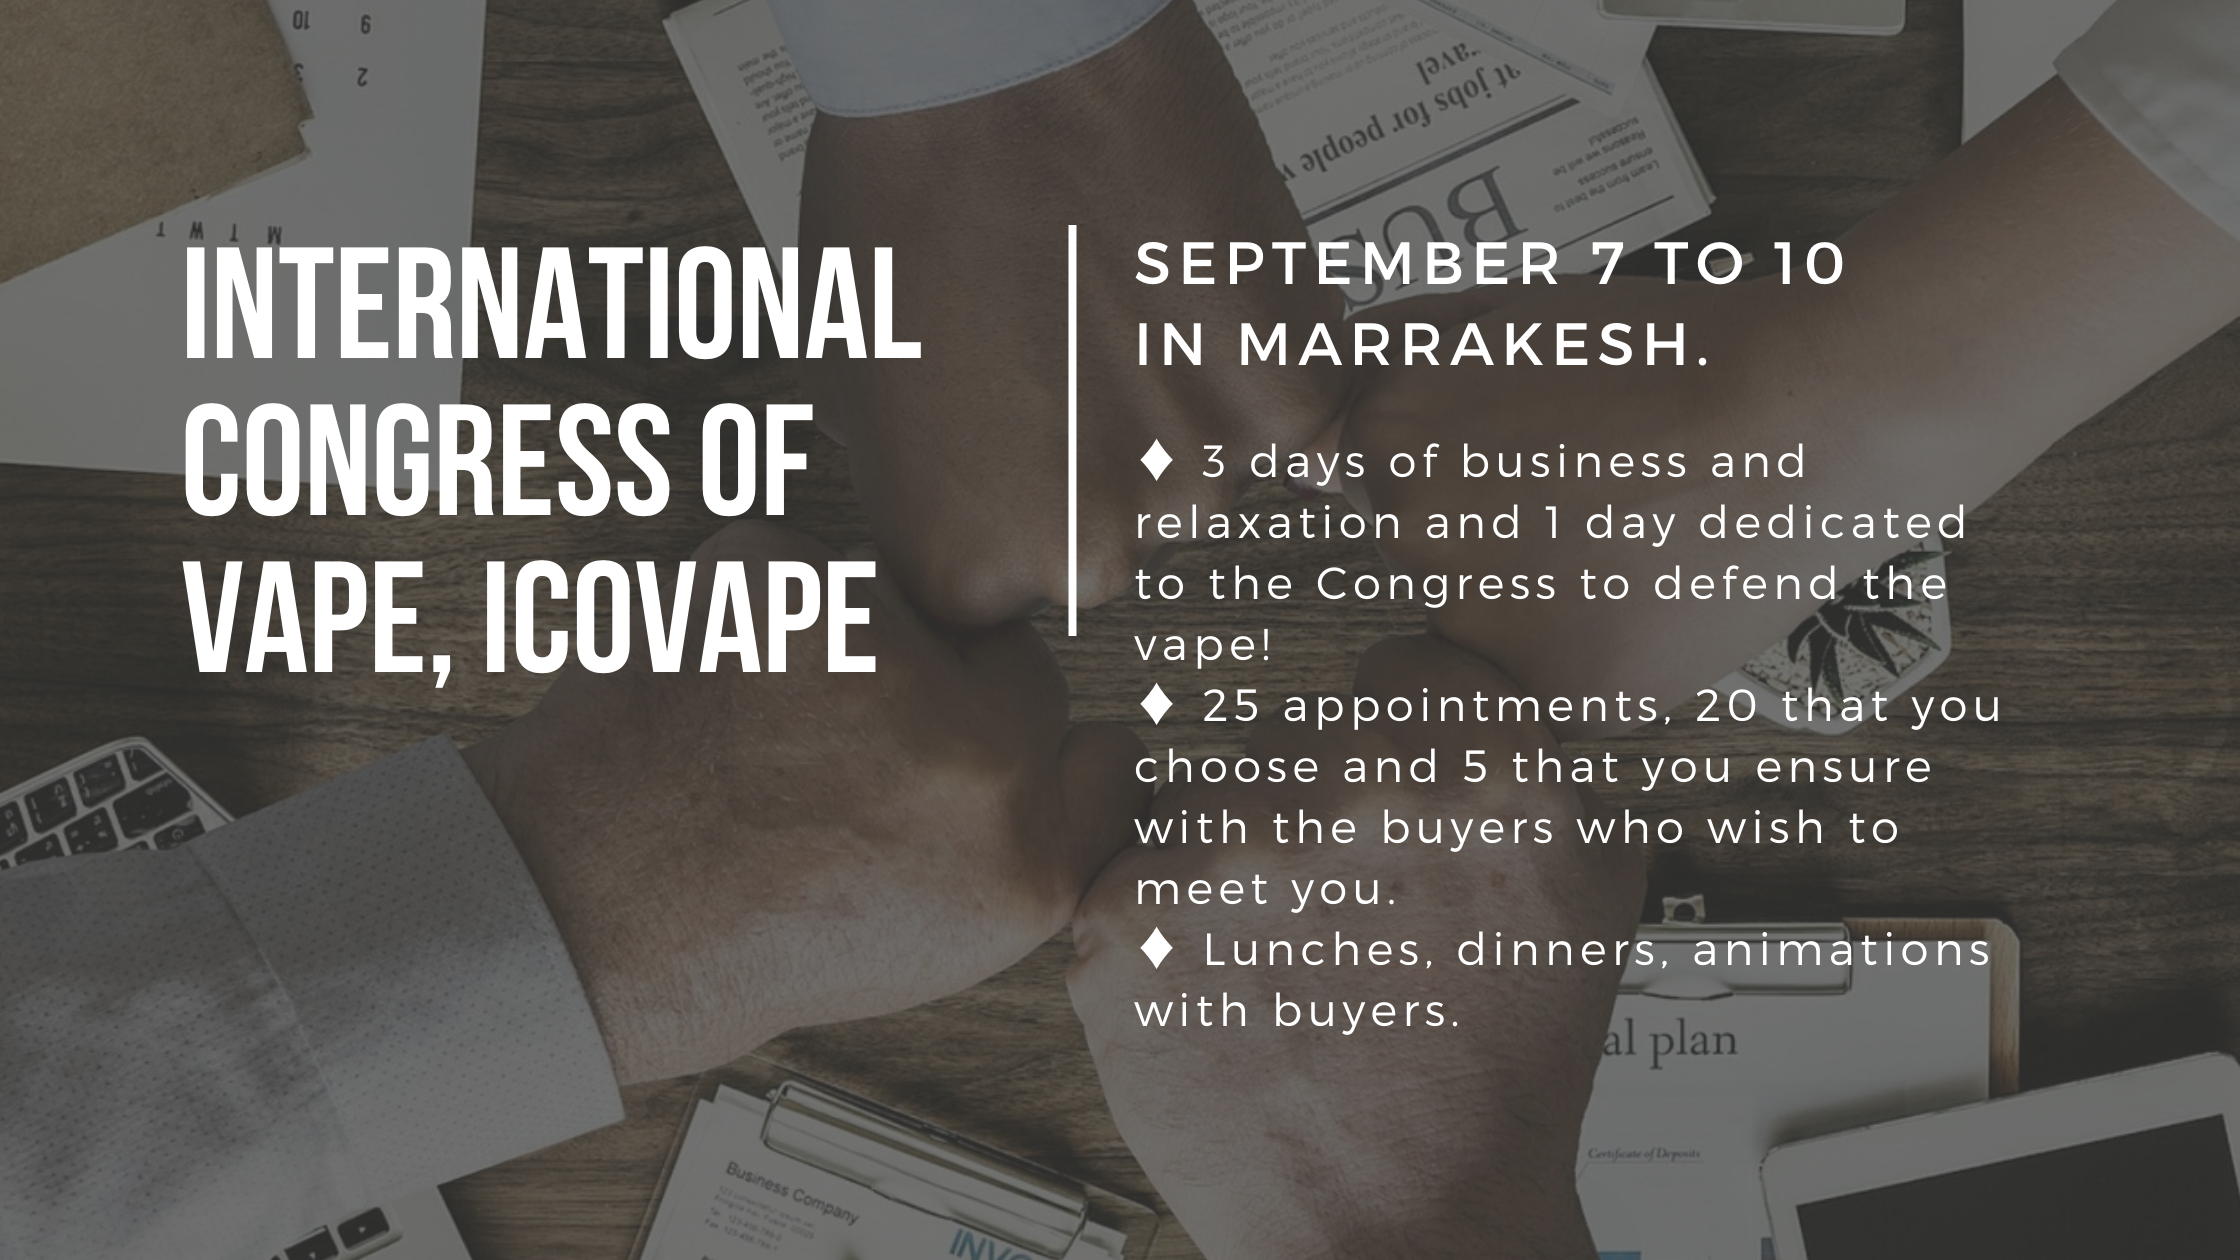 International Congress of vape, icovape